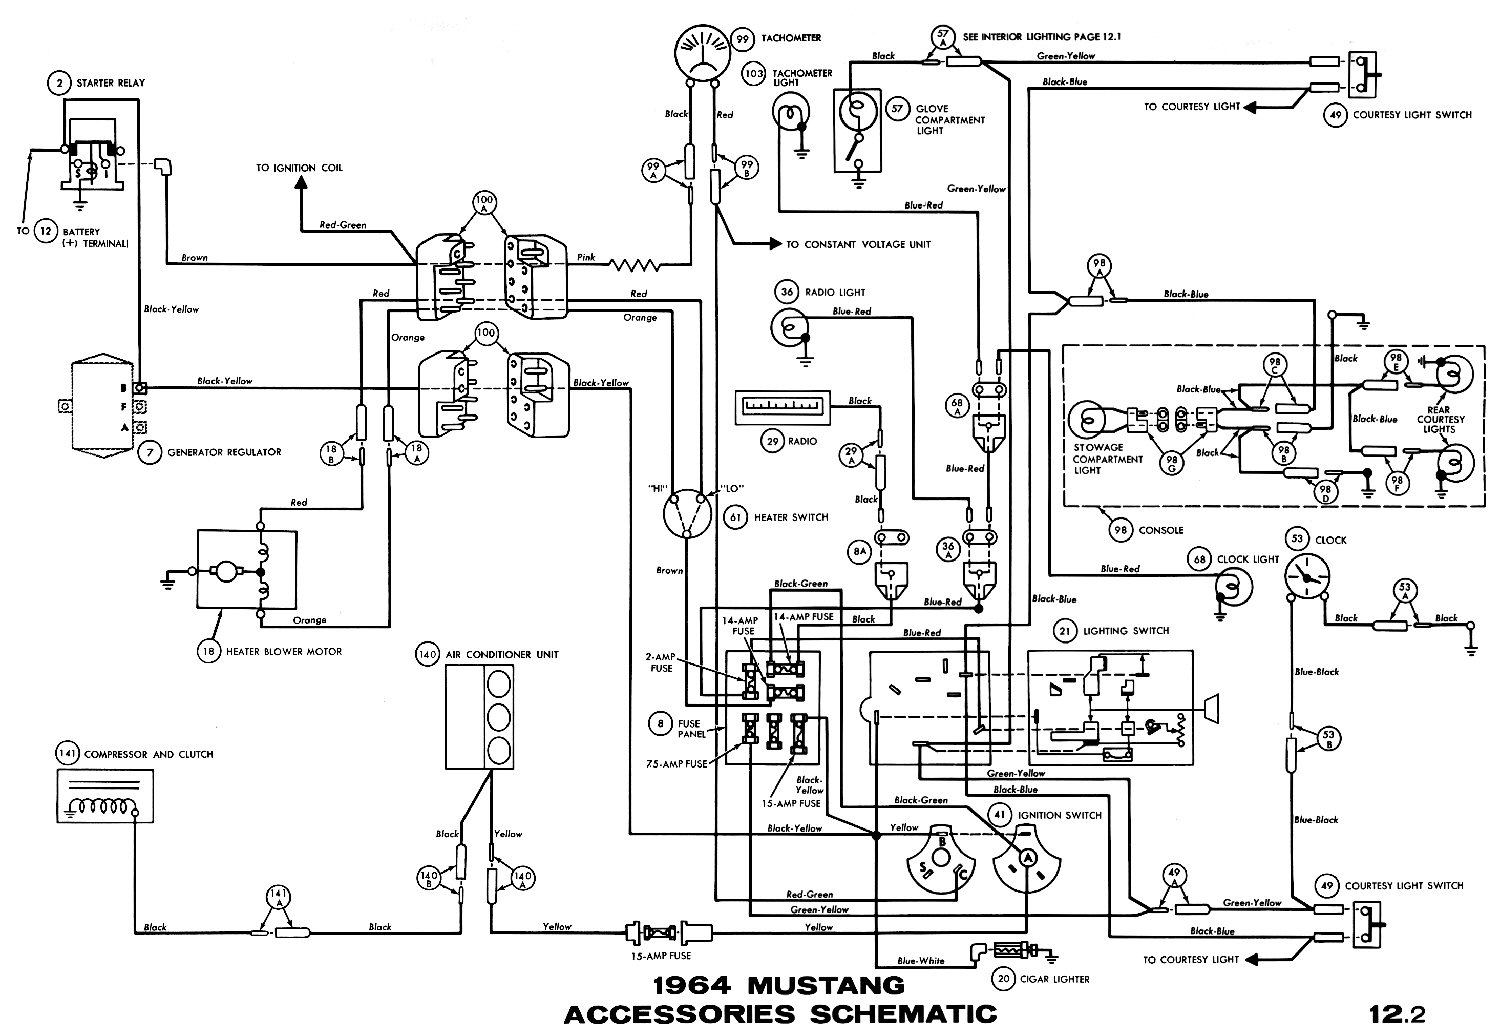 1964m 2015 mustang wiring diagram schematic mustang 2015 \u2022 free wiring wiring harness 1964 mustang at bayanpartner.co